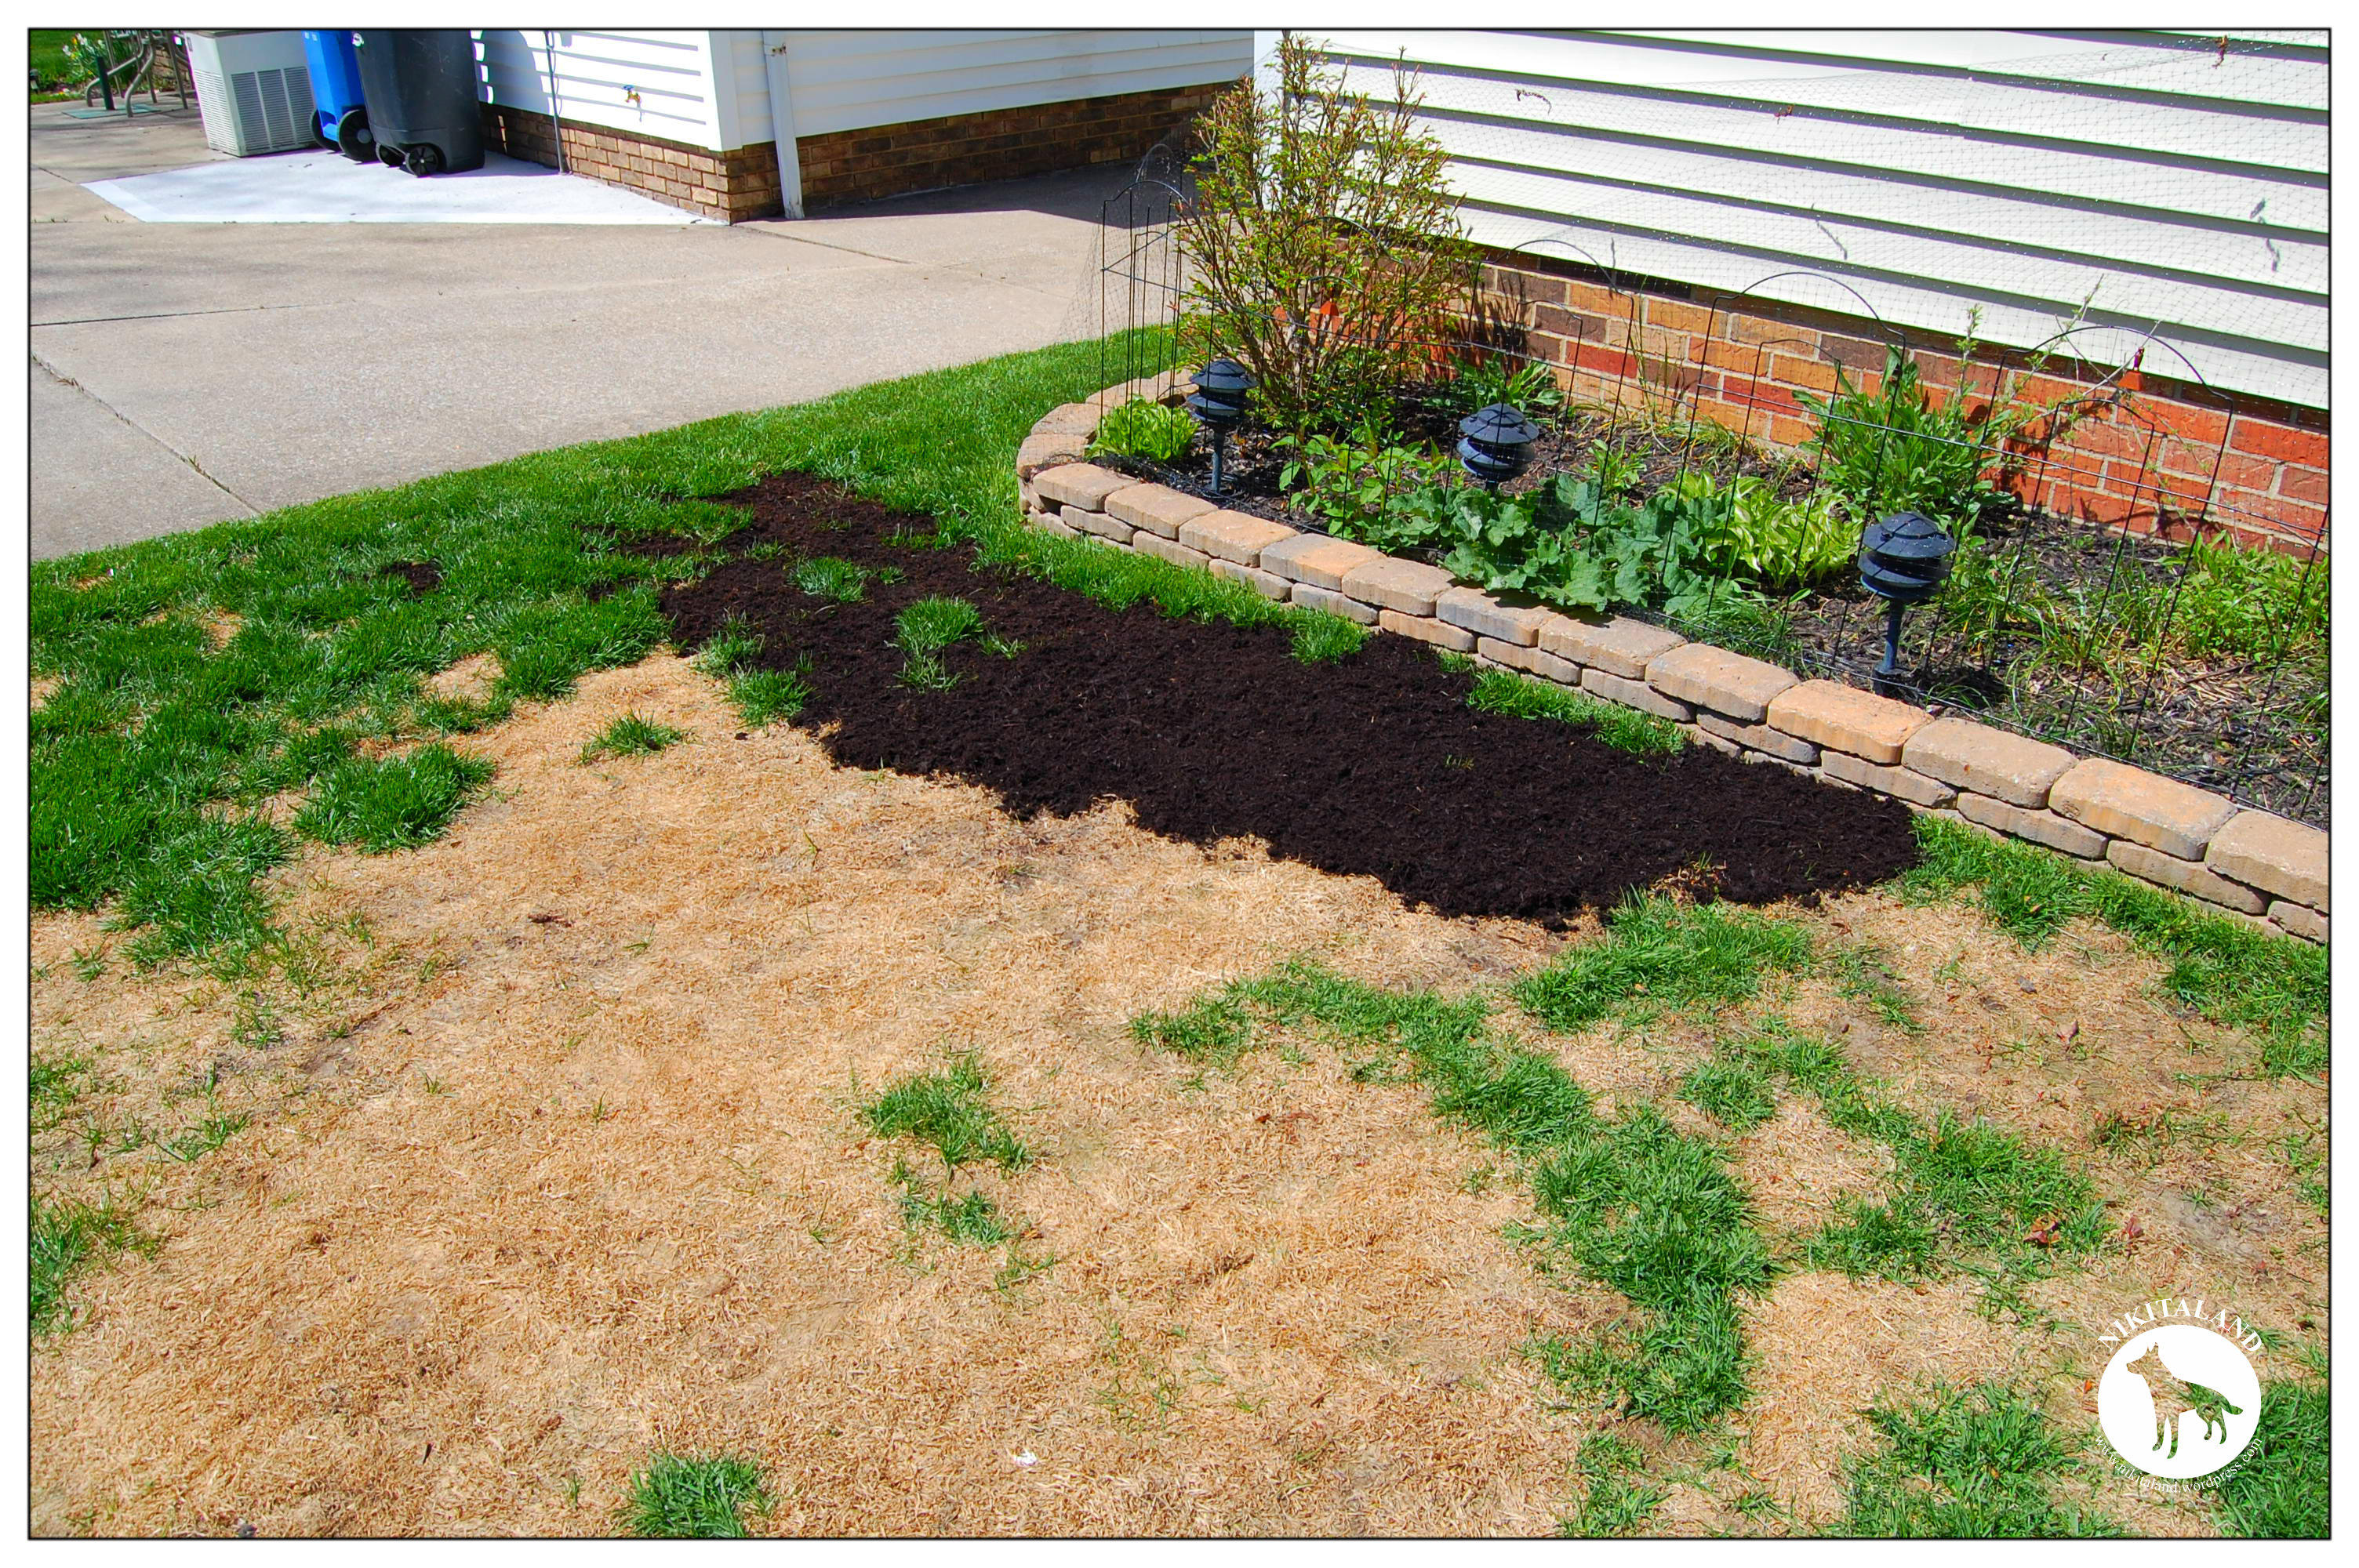 Best way to plant grass seed - Laying Soil Once You Feel That You Have Completely Covered All The Areas You Need With The Topsoil It Is Time To Spread Your Seed You Can Lay Your Grass